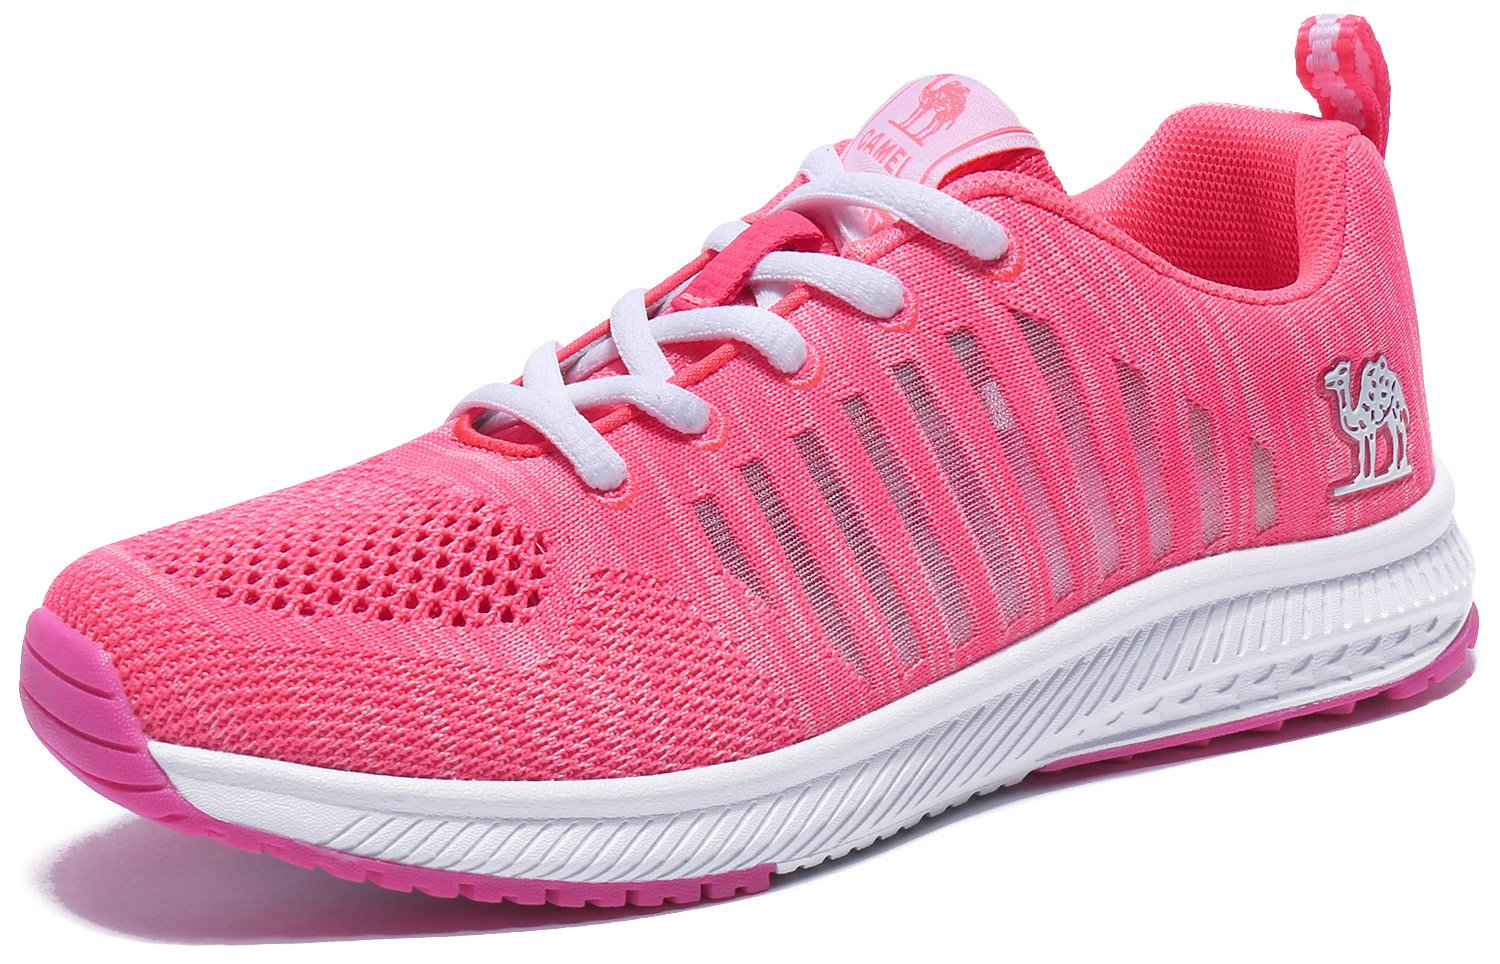 Camel Women Running Shoes Lightweight Breathable Sneakers Mesh Tennis Shoes M for Sport B07B9X92HJ 5.5 M Shoes US|Pink abd19c